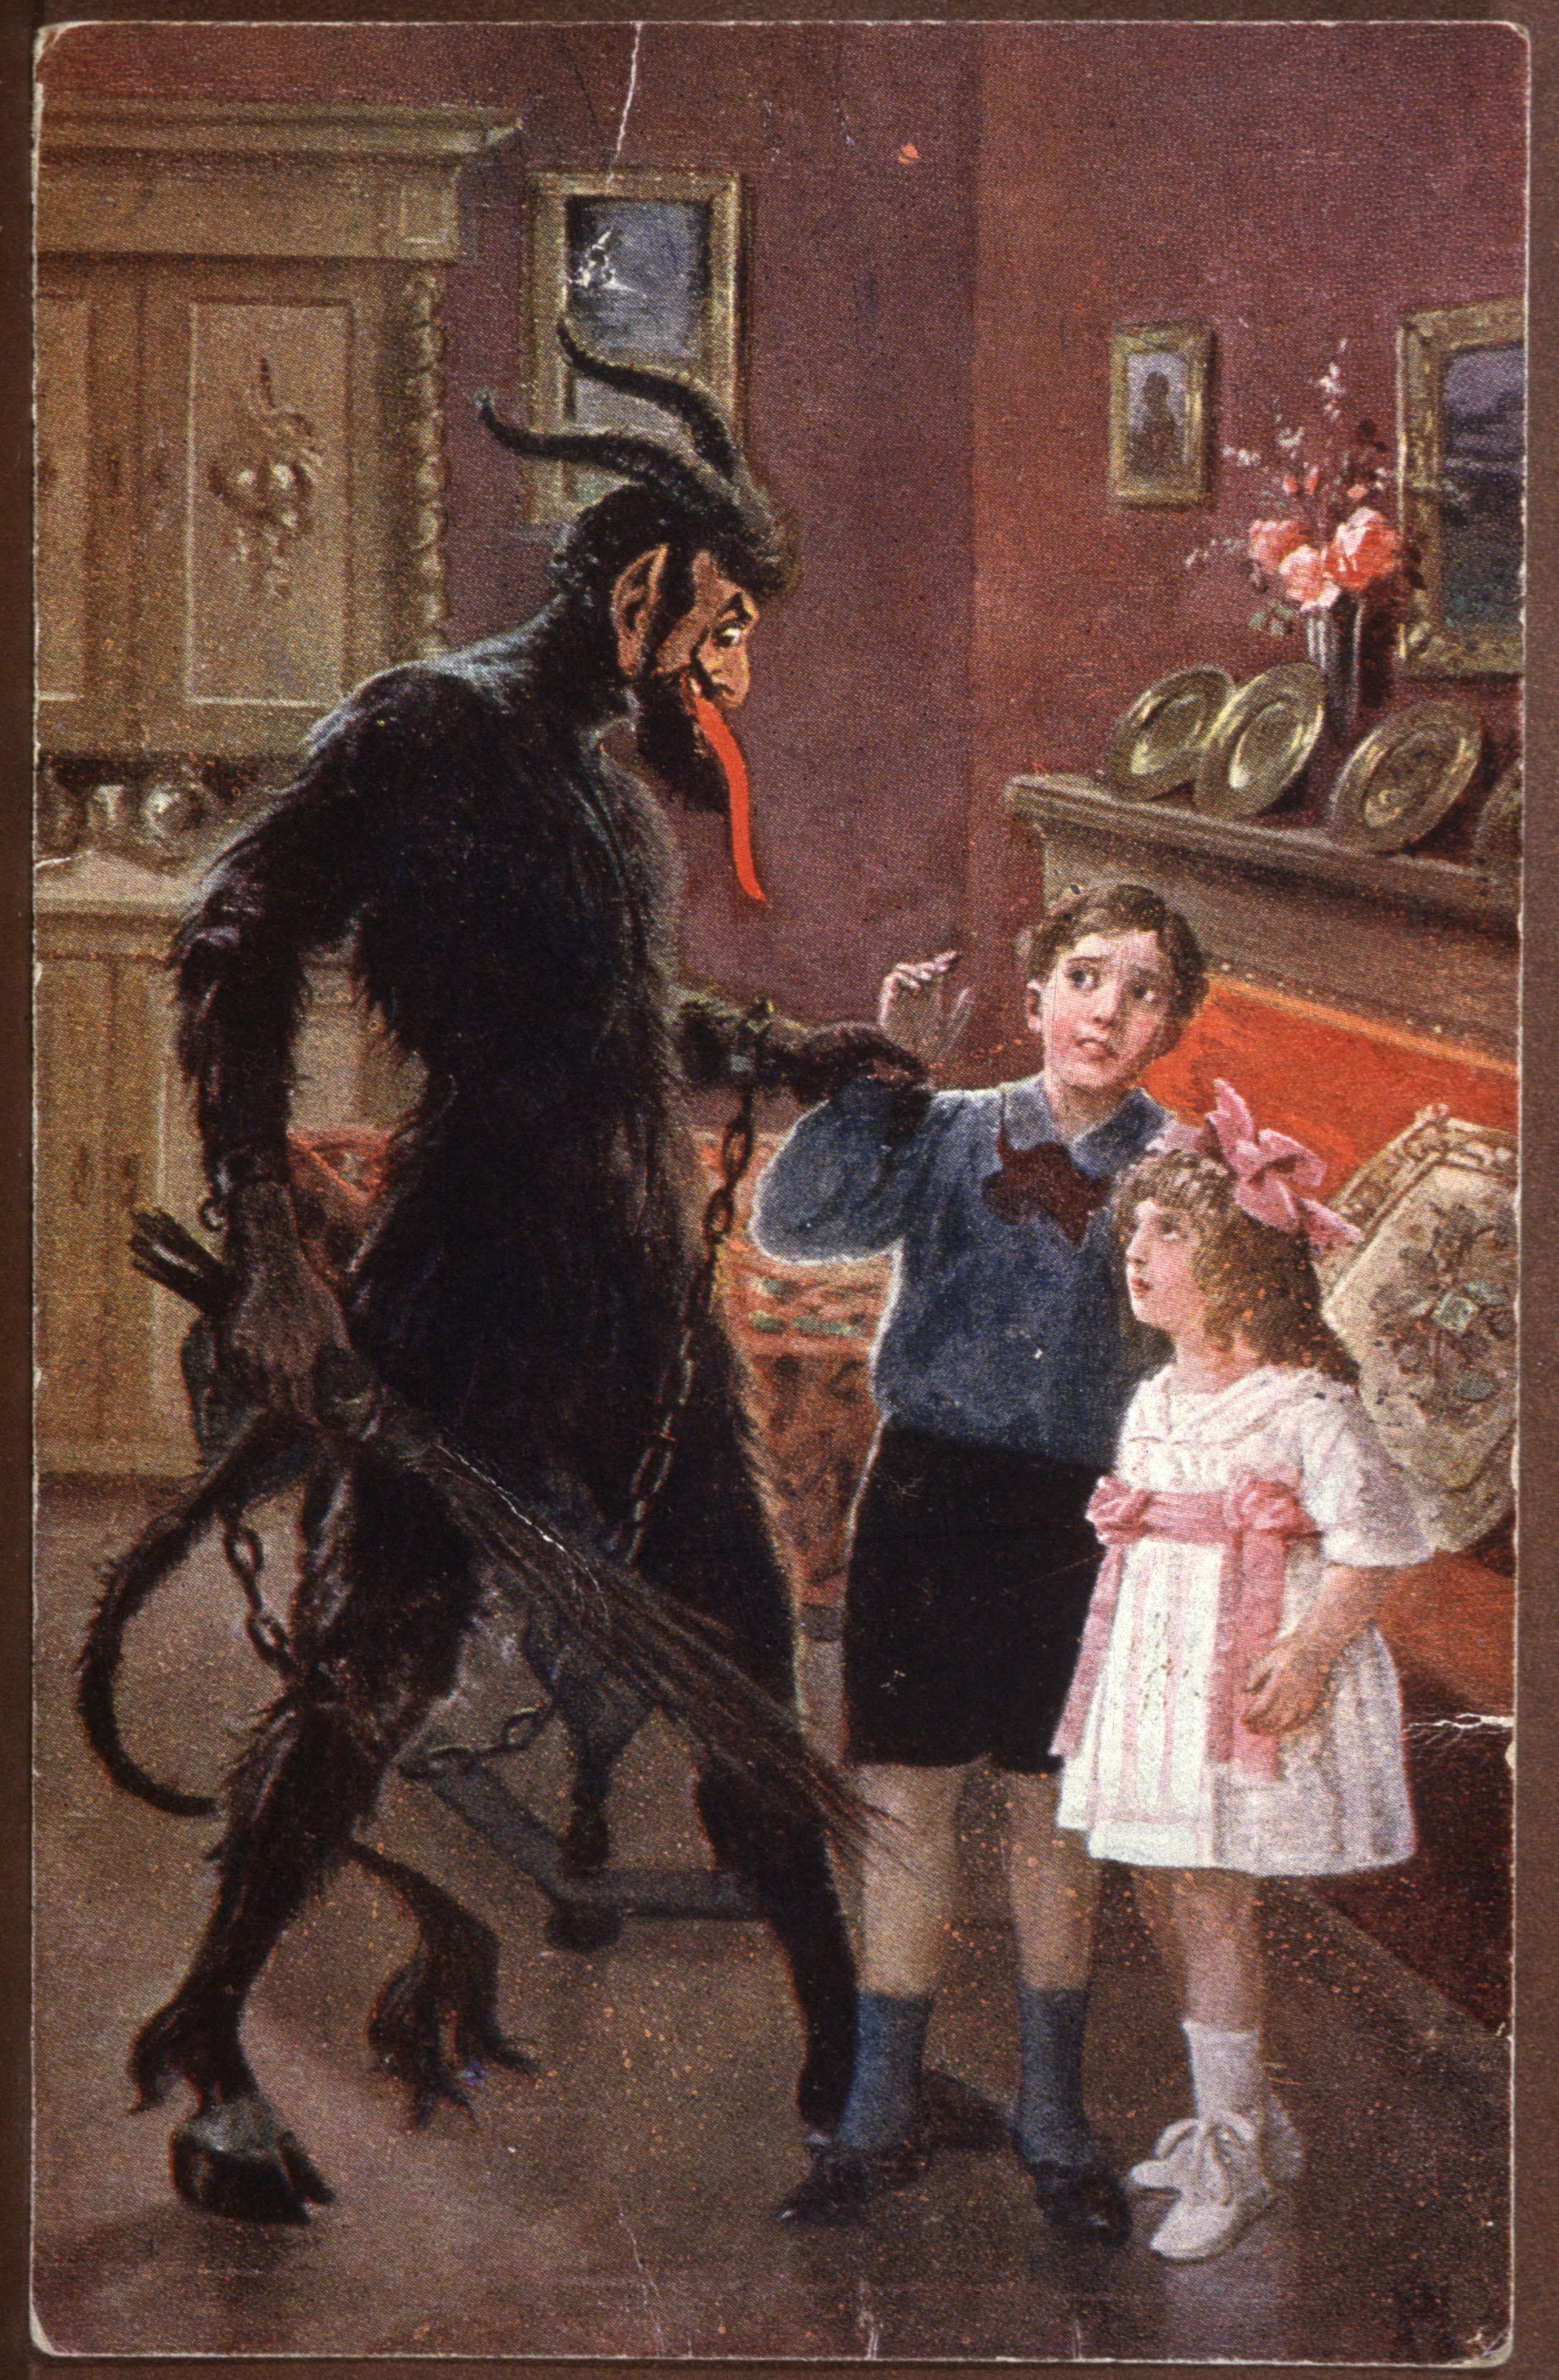 Krampus (Devil, Père Fouettard, Knecht Ruprecht, traditionally evil companion of Santa Claus) taking naughty children, postcard for feast of St Nicholas, Hungary, early 20th century